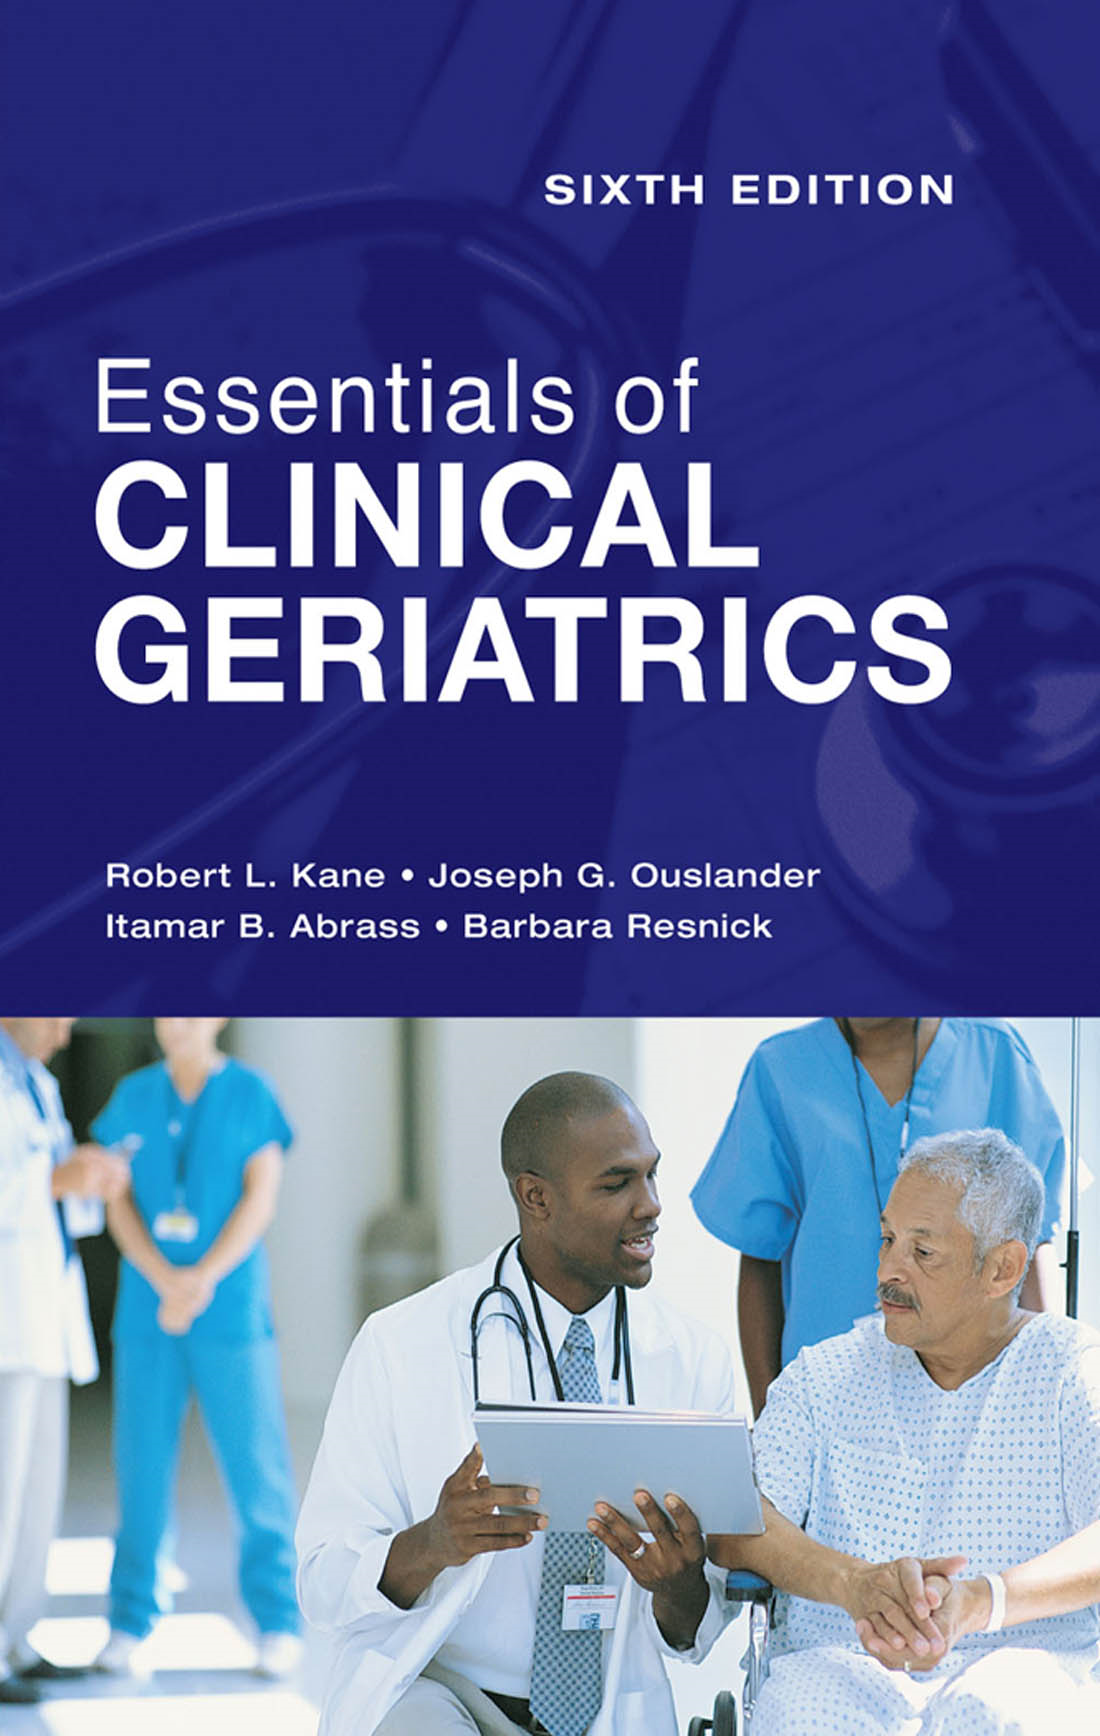 Essentials of Clinical Geriatrics: Sixth Edition